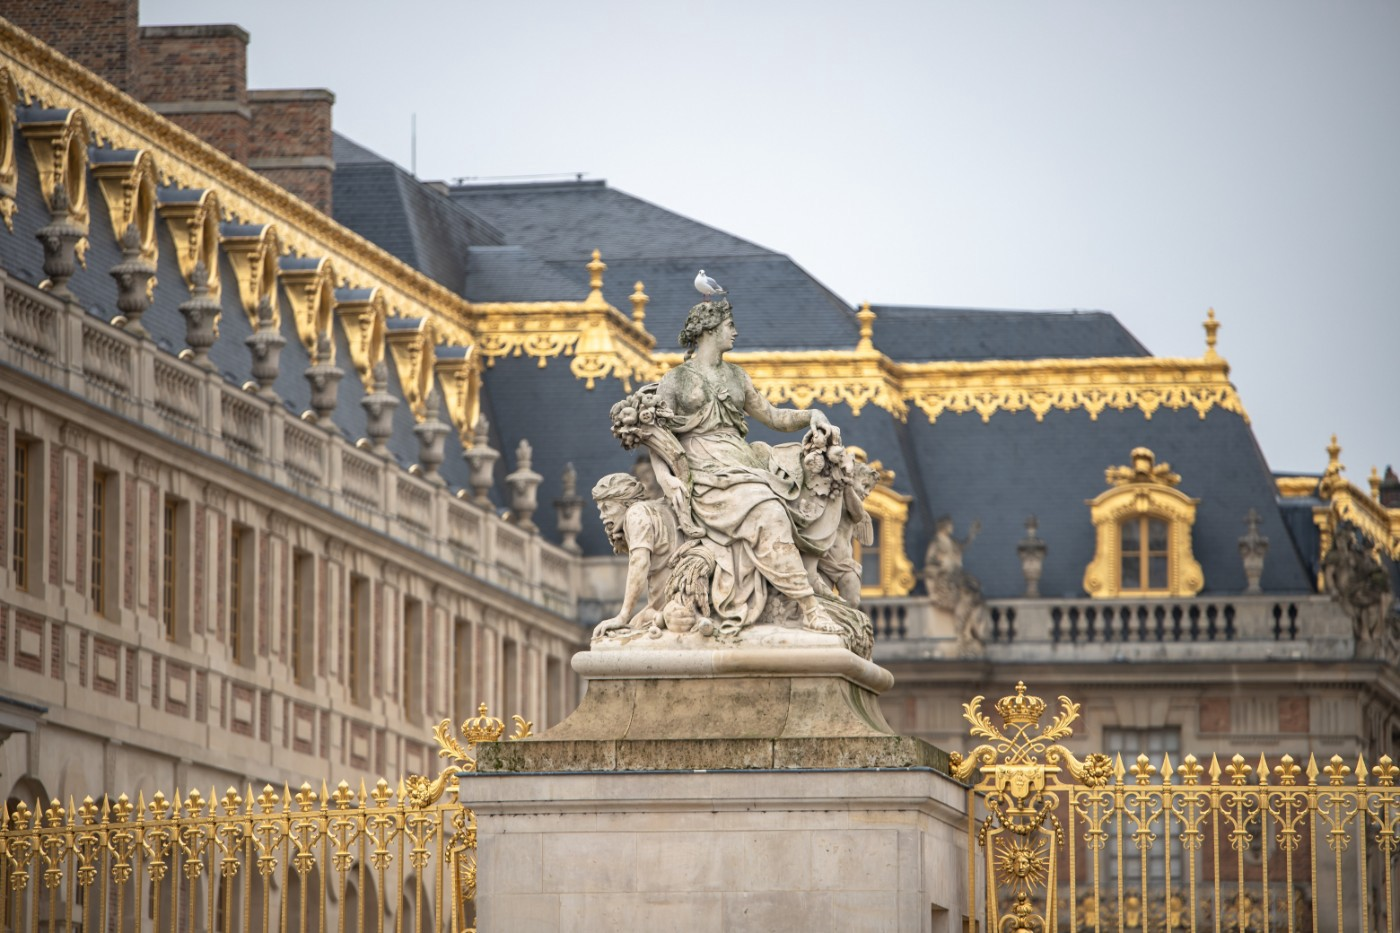 Gilded accents and a statue of a woman outside the Château de Versailles.